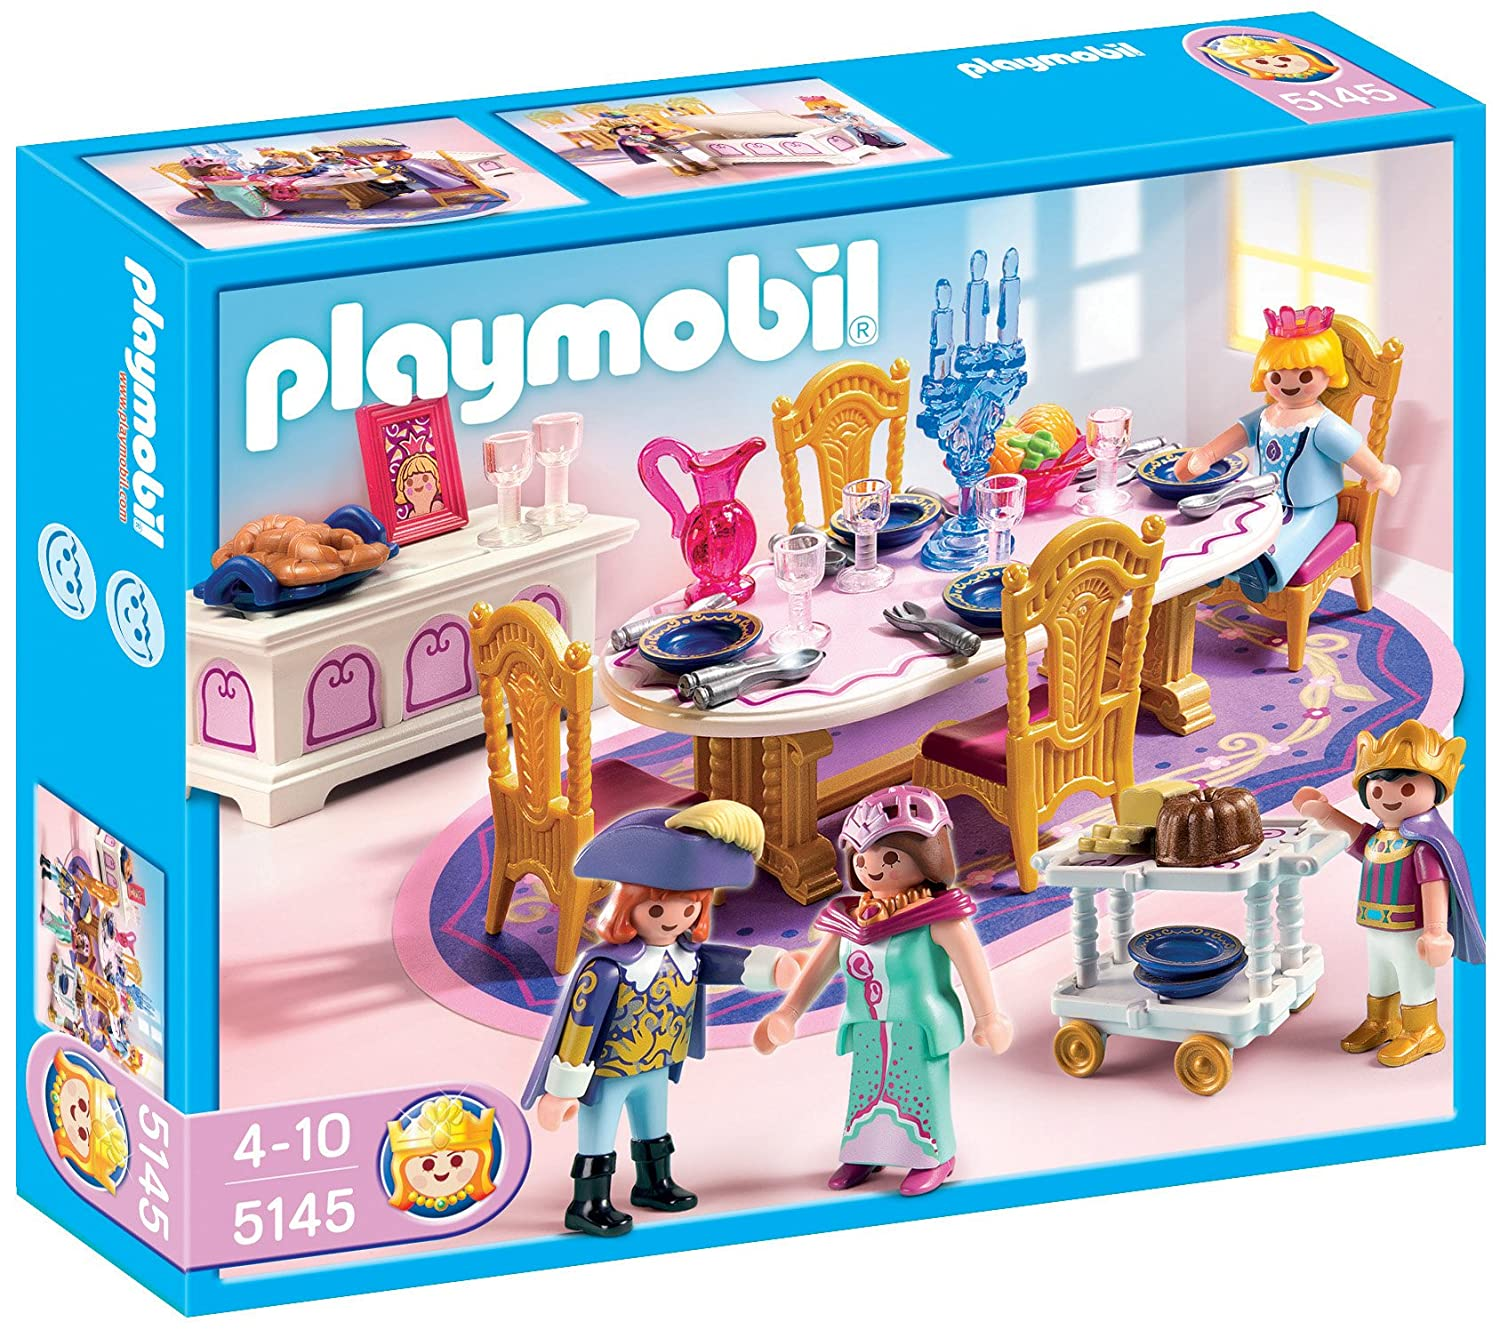 latest playmobil jeu de salle manger royale amazonfr jeux et jouets with chambre princesse playmobil. Black Bedroom Furniture Sets. Home Design Ideas